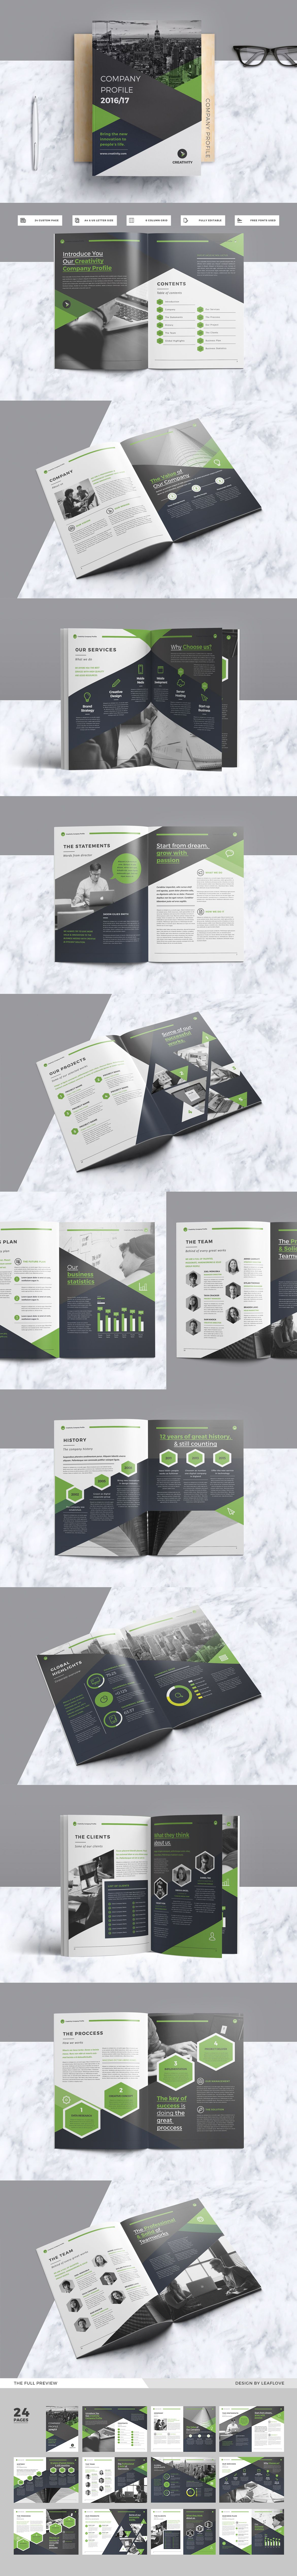 Company Profile Template InDesign INDD | Inspire for work ...